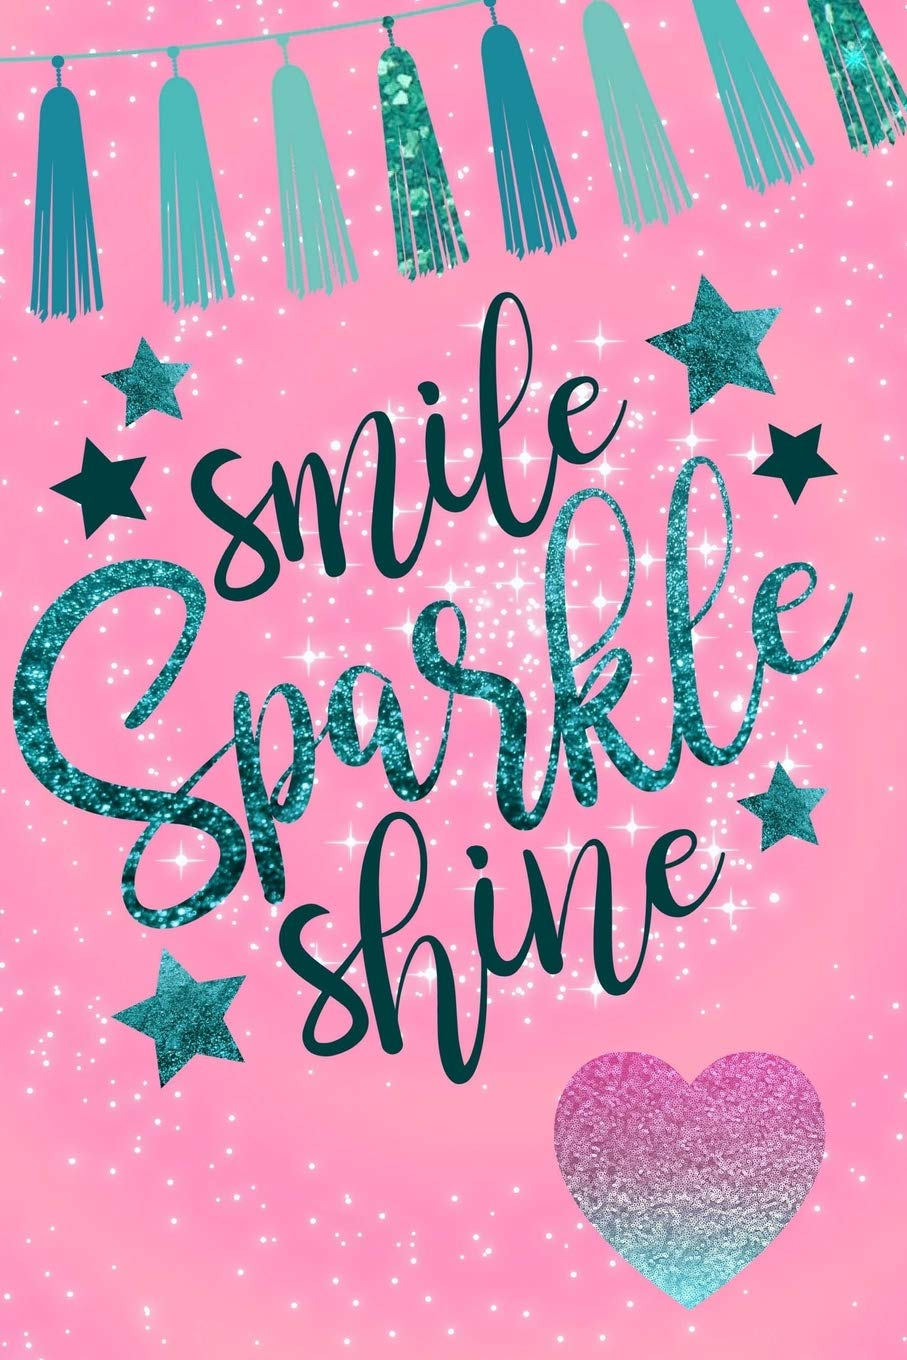 Smile Sparkle Shine Glitter Teal Expression Quote Journal